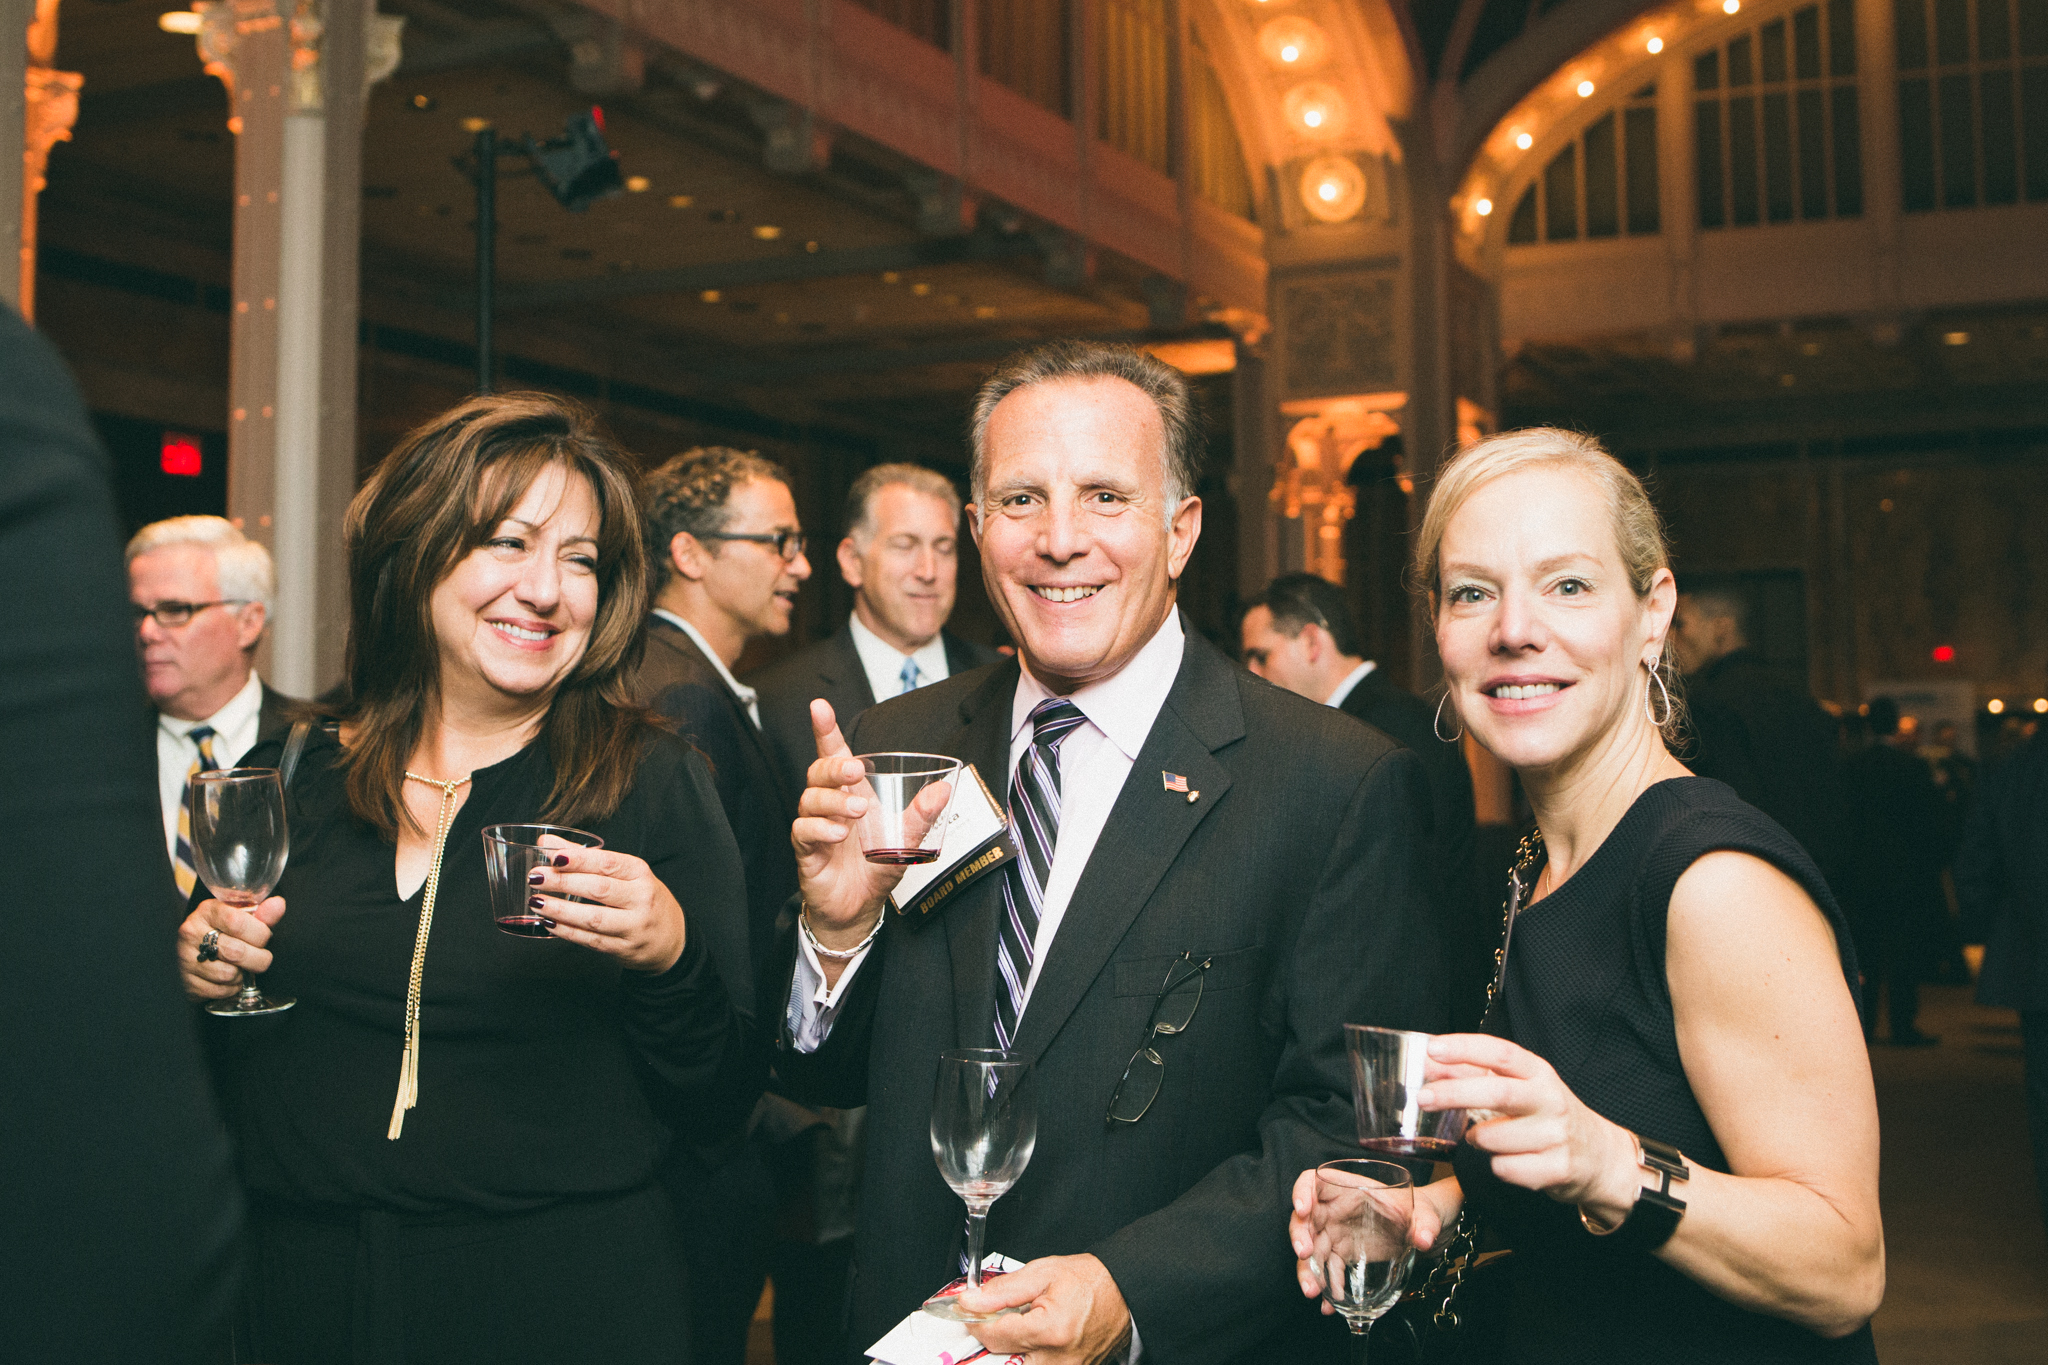 event_party_ny_winegala_006.jpg